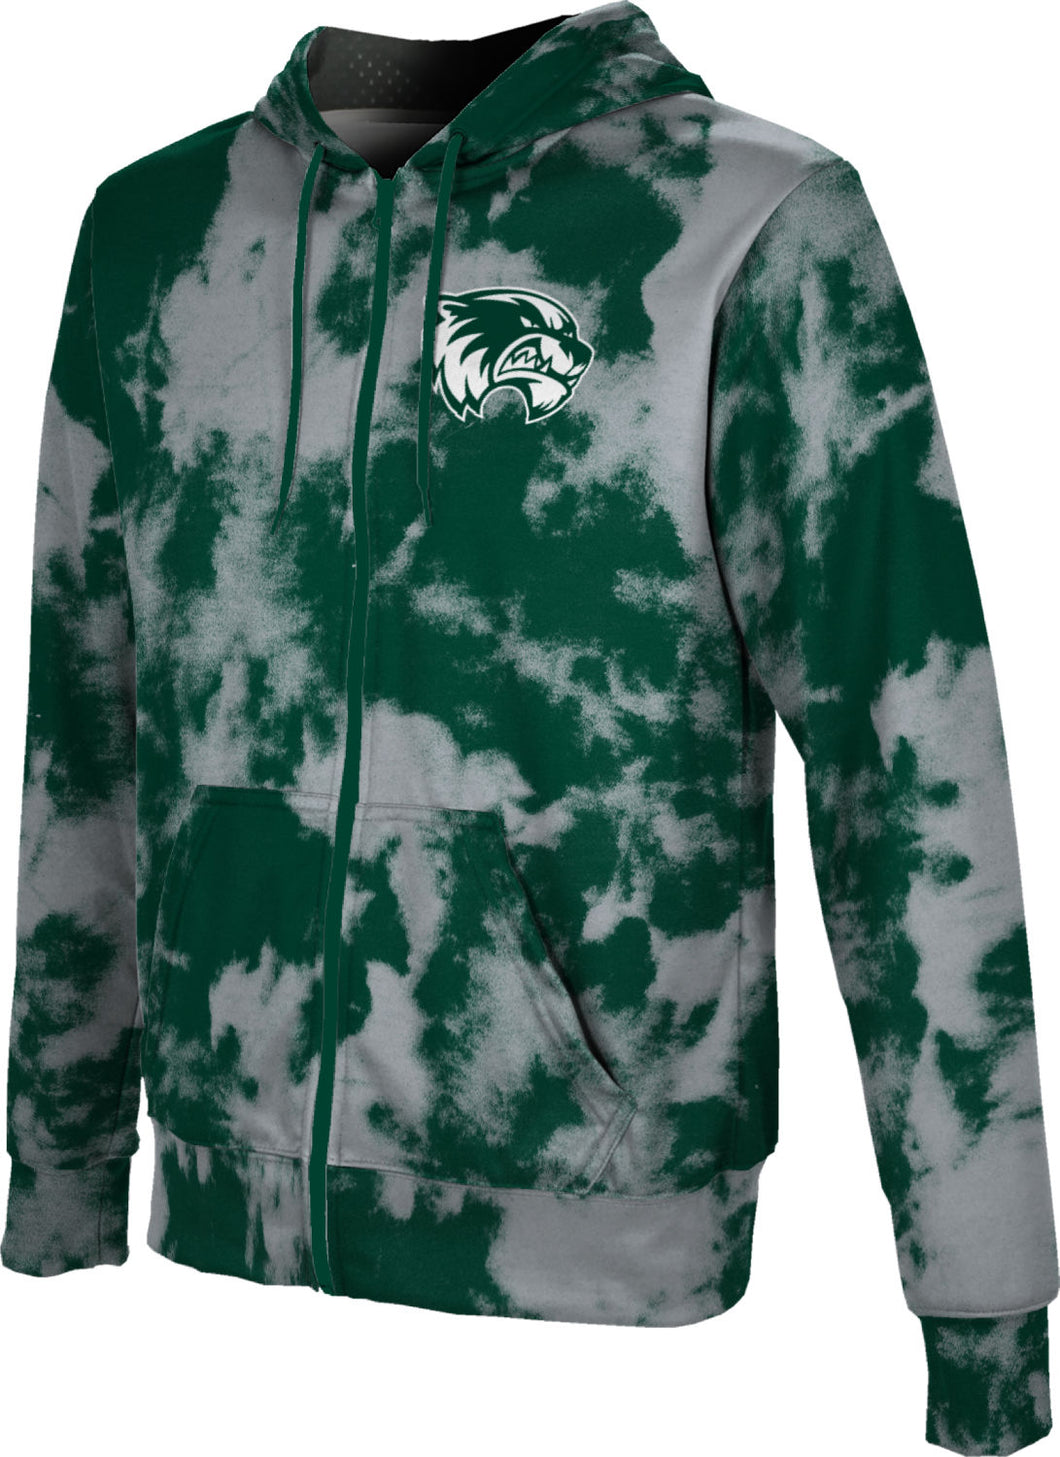 Utah Valley University: Men's Full Zip Hoodie - Grunge